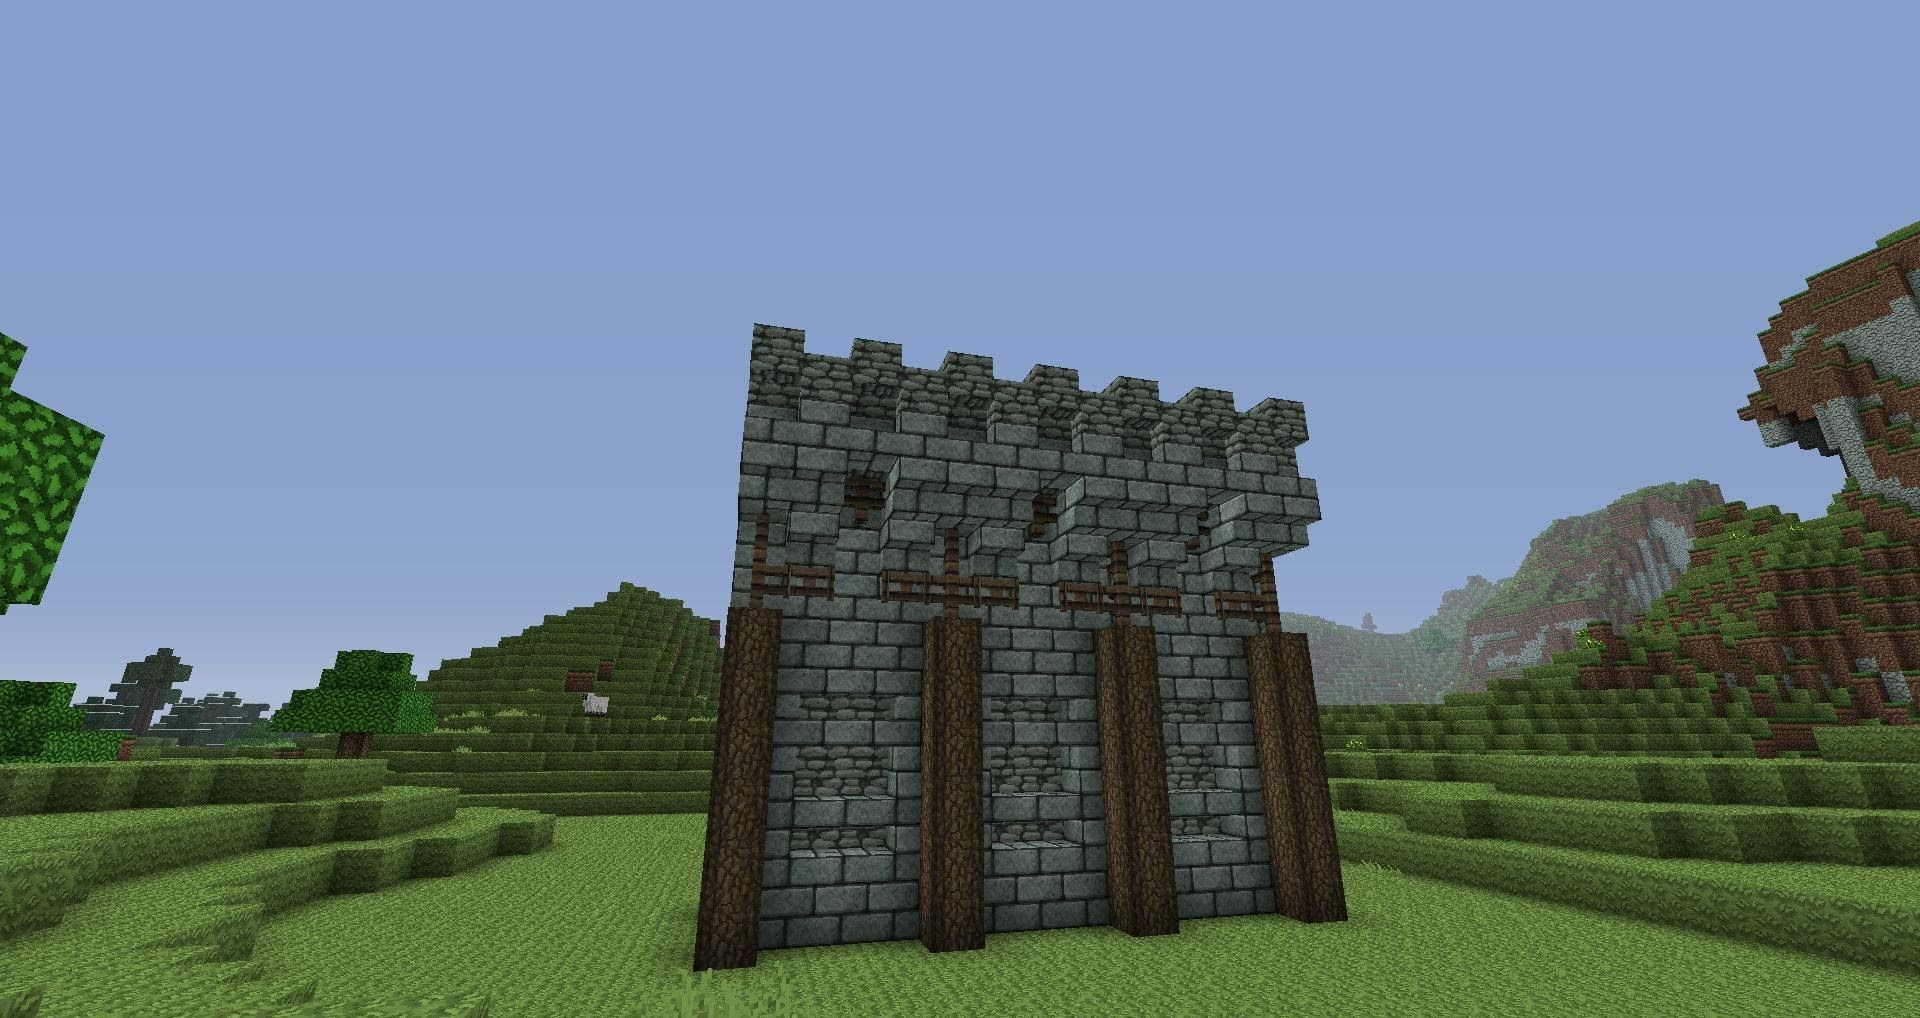 Walls For Neitherspine Going To Modify These Quite A Bit Want A Roof For One Neitherspine